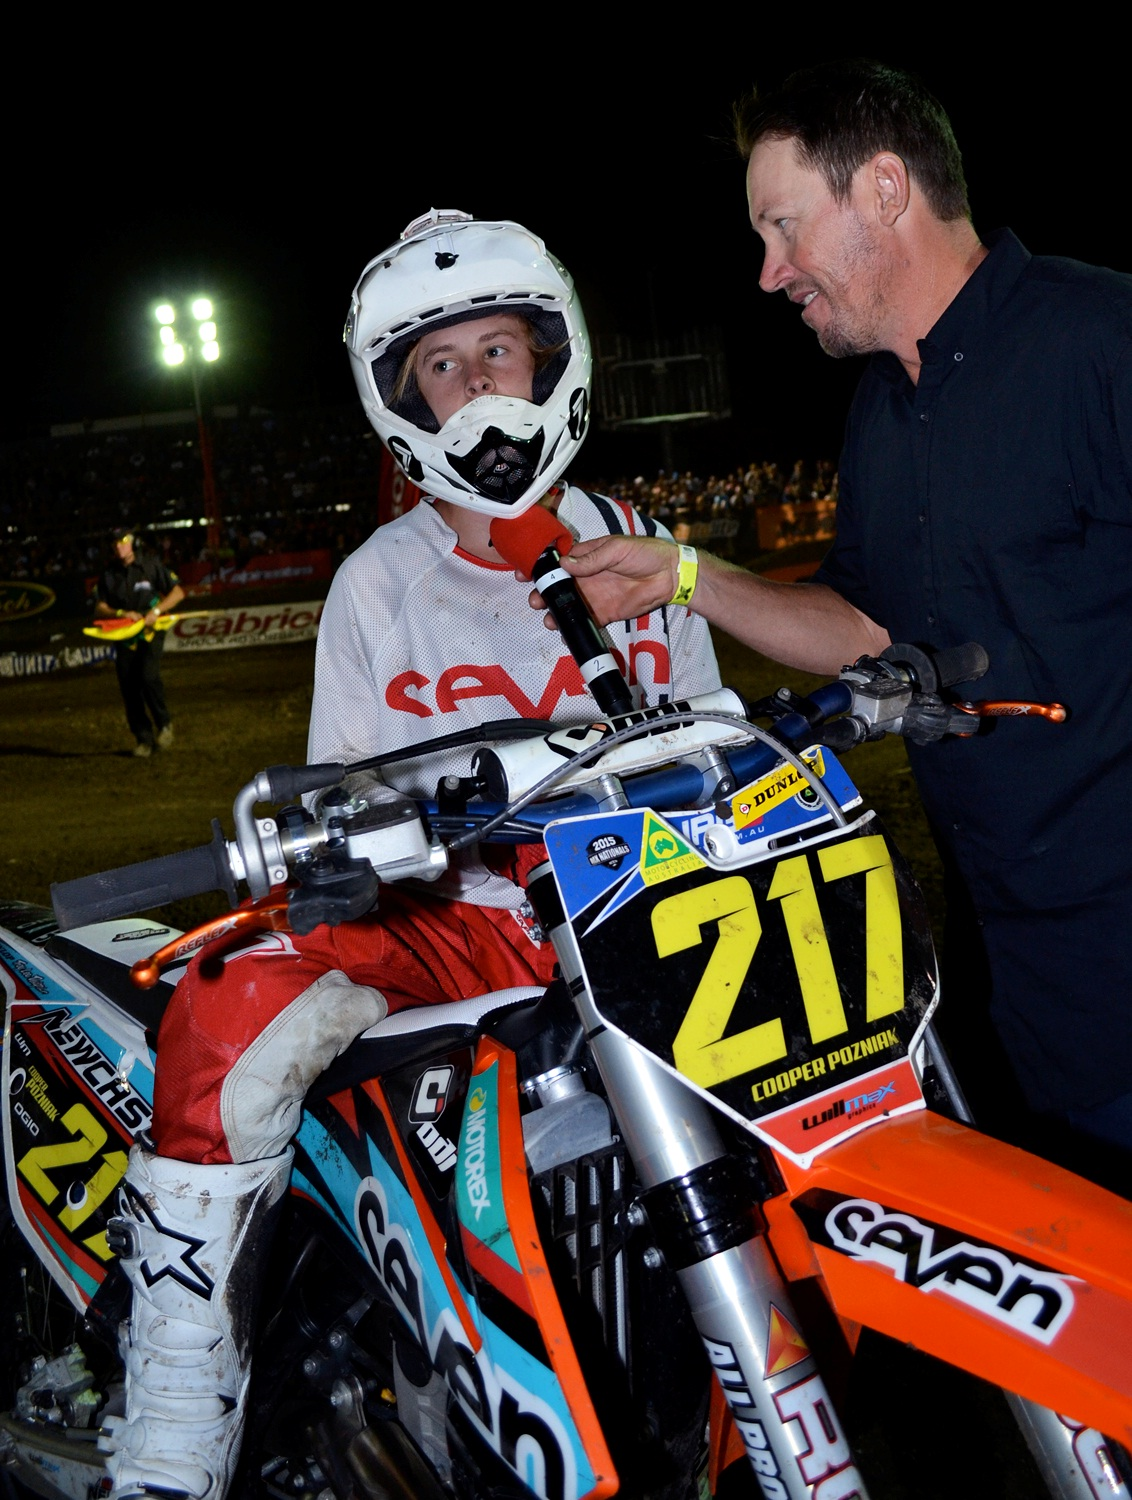 Cooper Pozniak 2015 ASX Junior Lites Champion